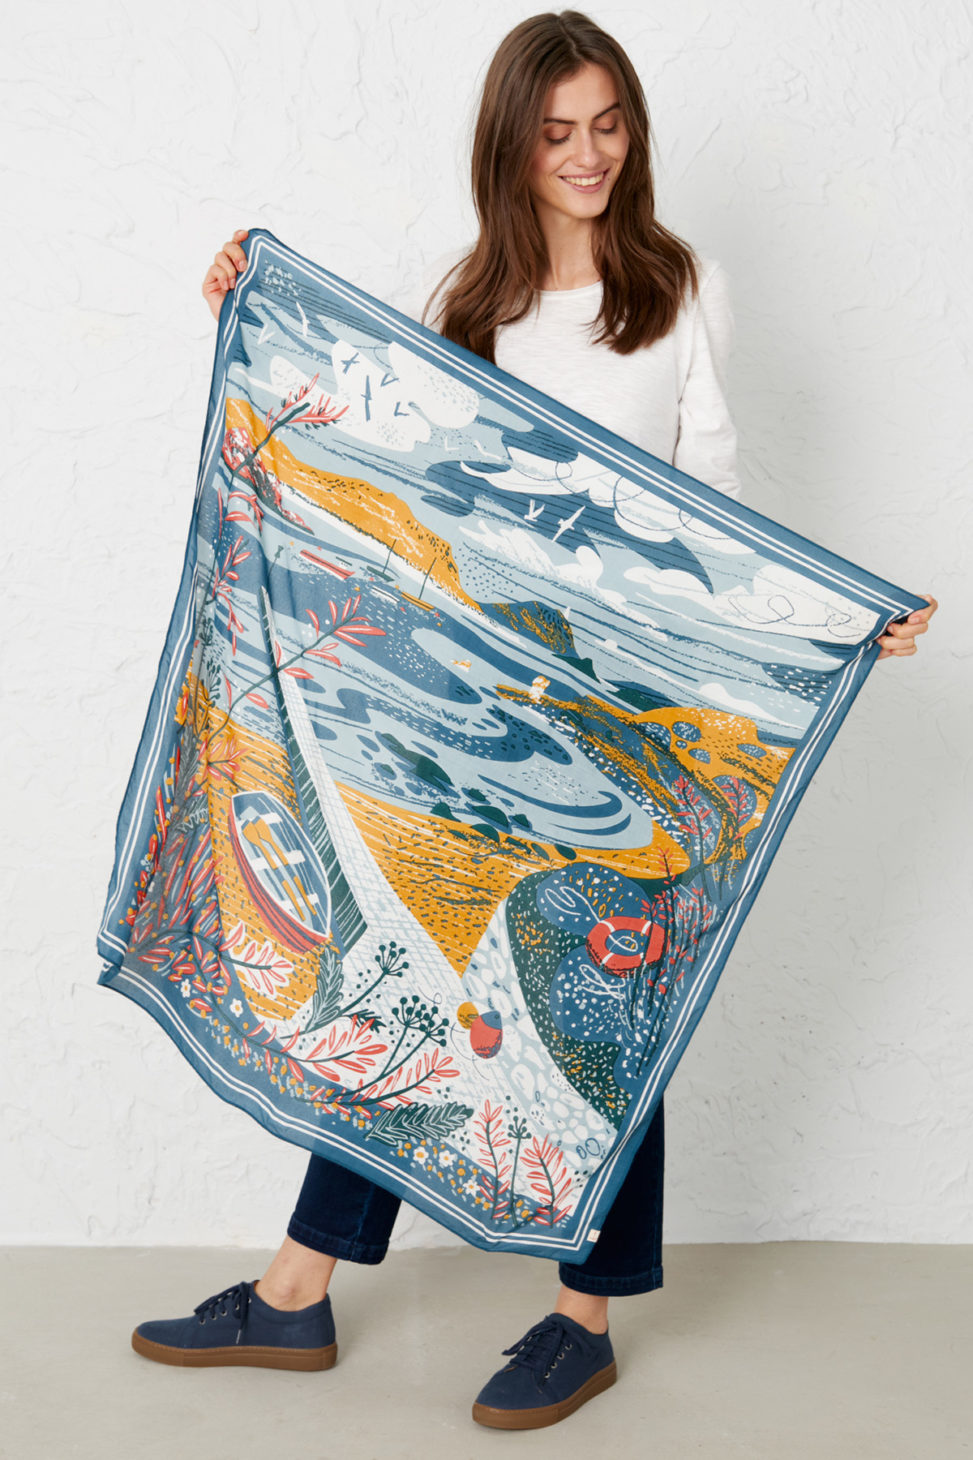 Taen Sound Scilly scarf print by Matt Johnson for Seasalt Cornwall